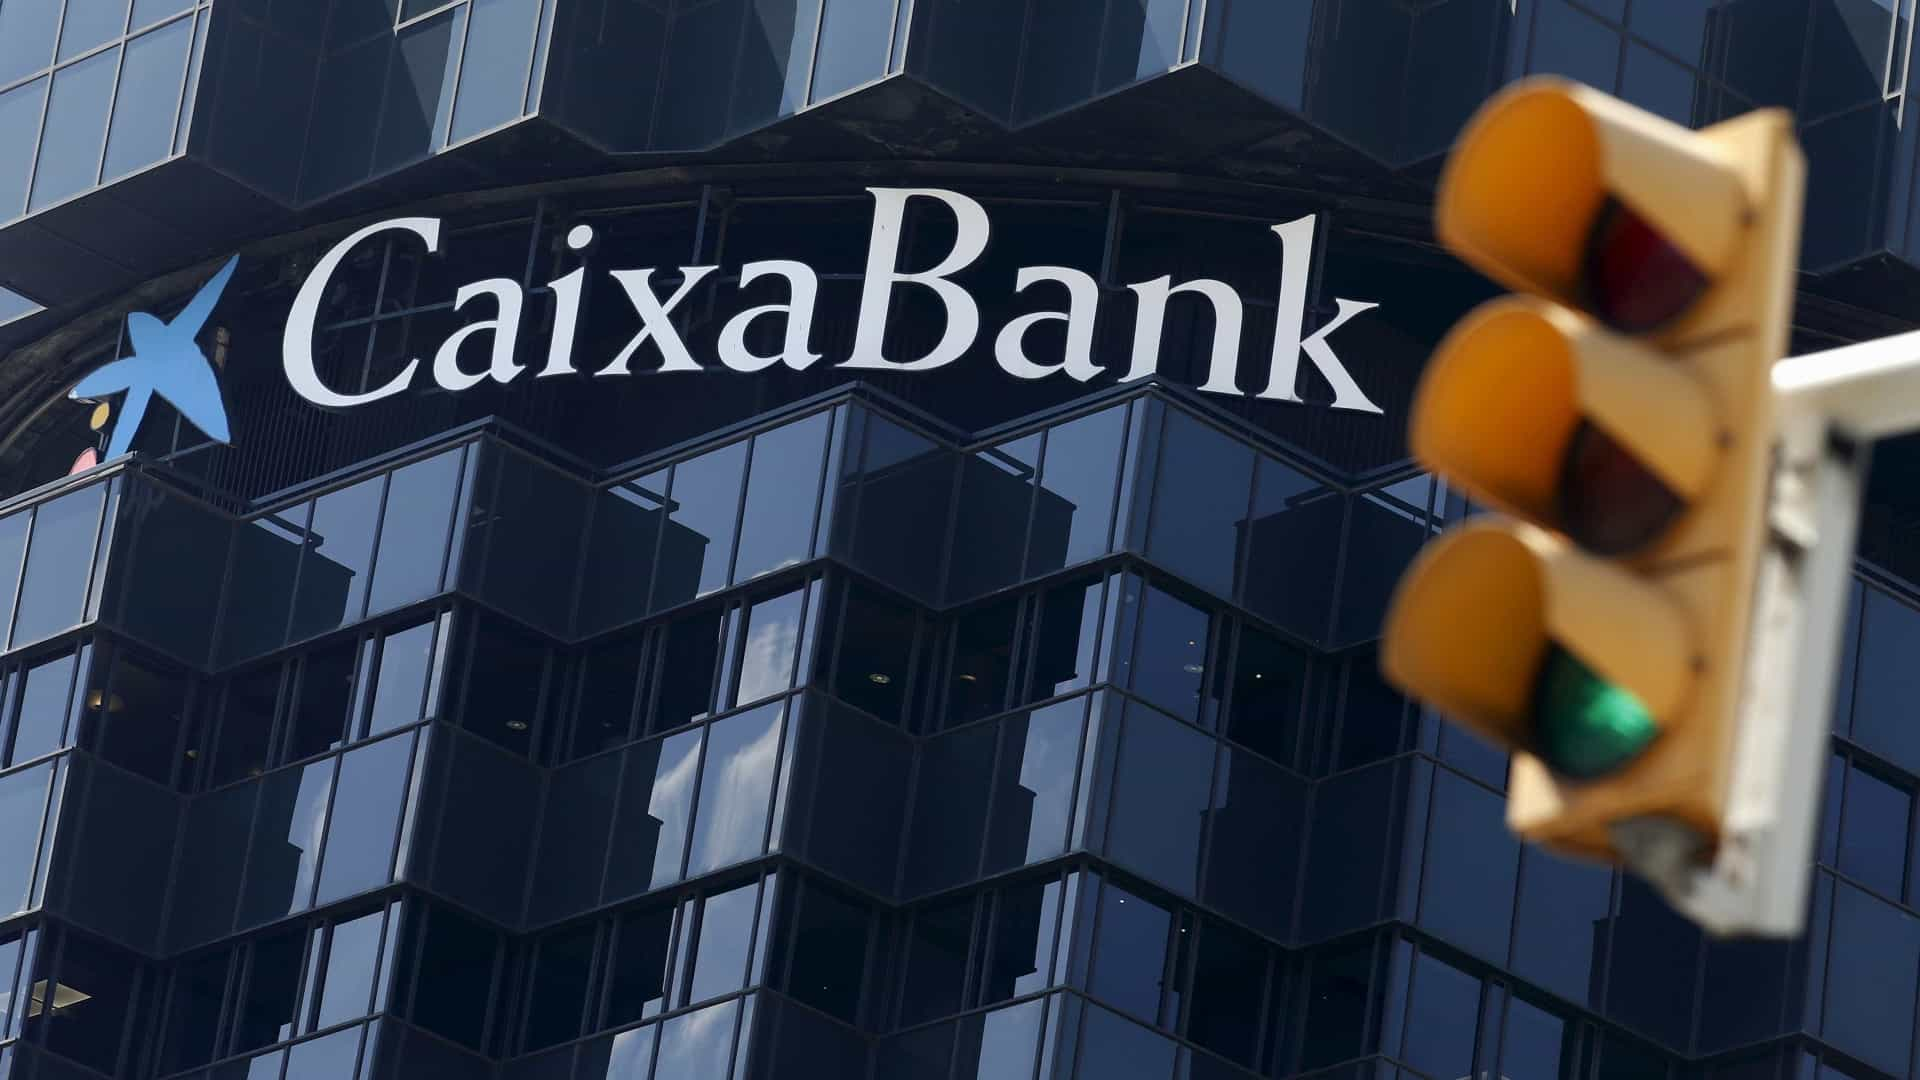 CaixaBank passa a deter mais de 94% do capital social do BPI